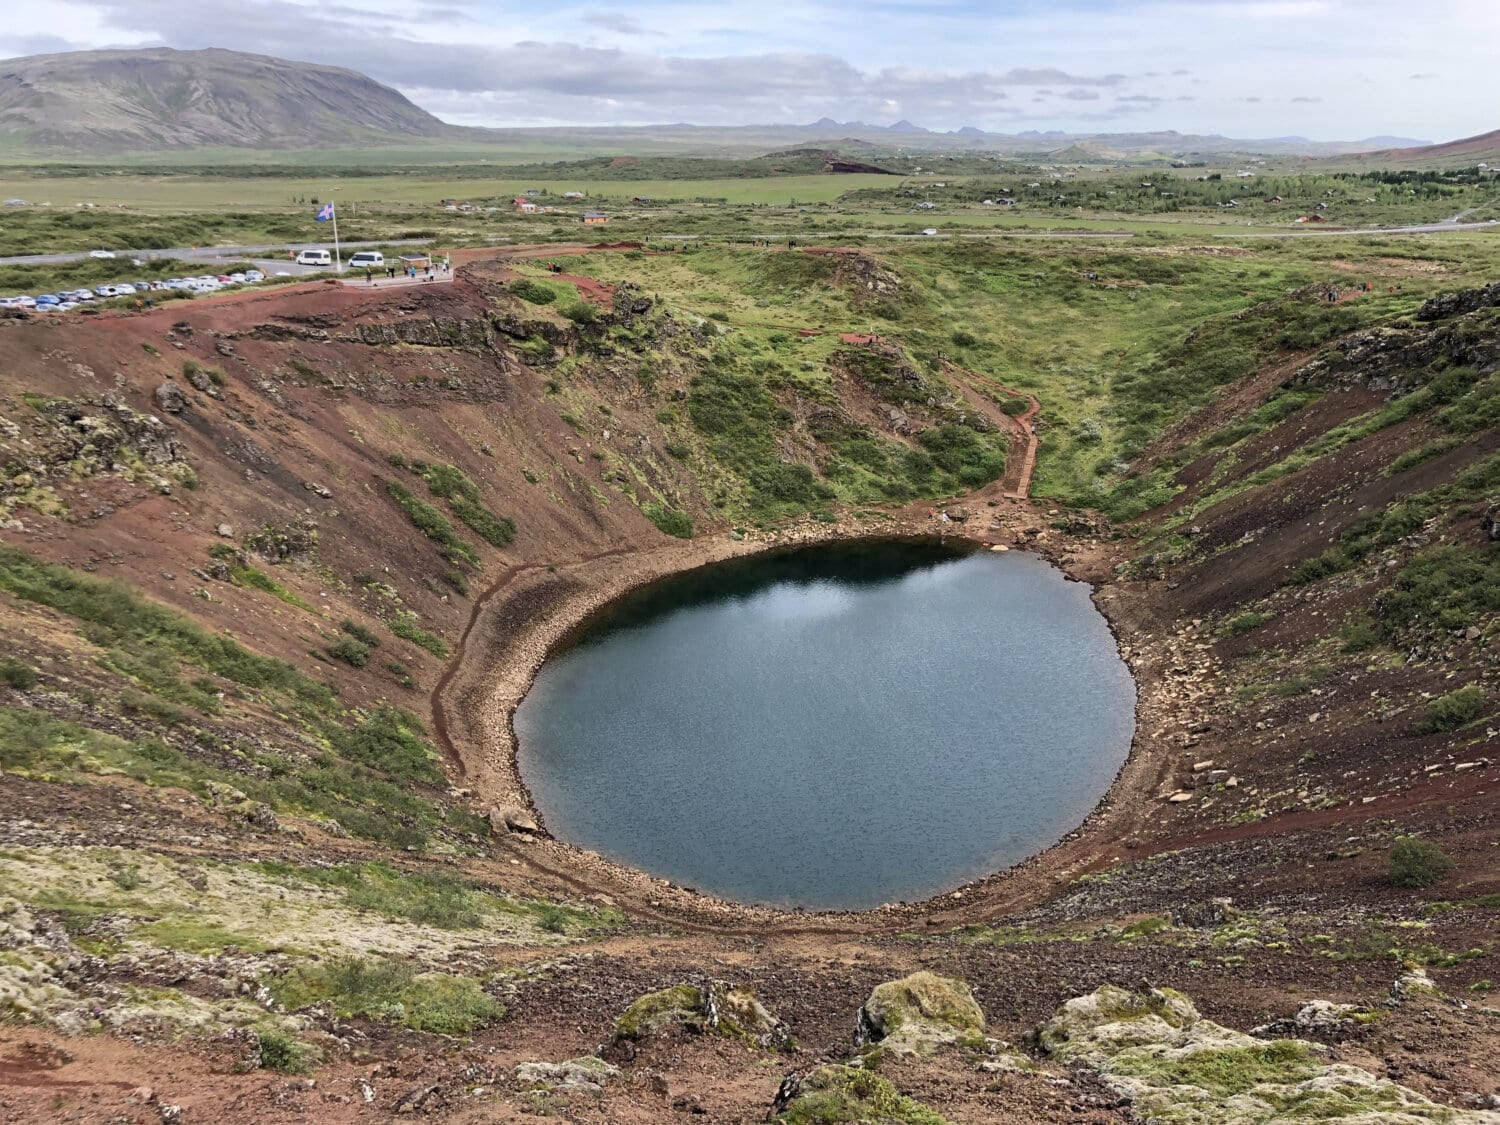 lake, landscape, volcano, crater, nature, eruption, water, mountain, volcanic, hill